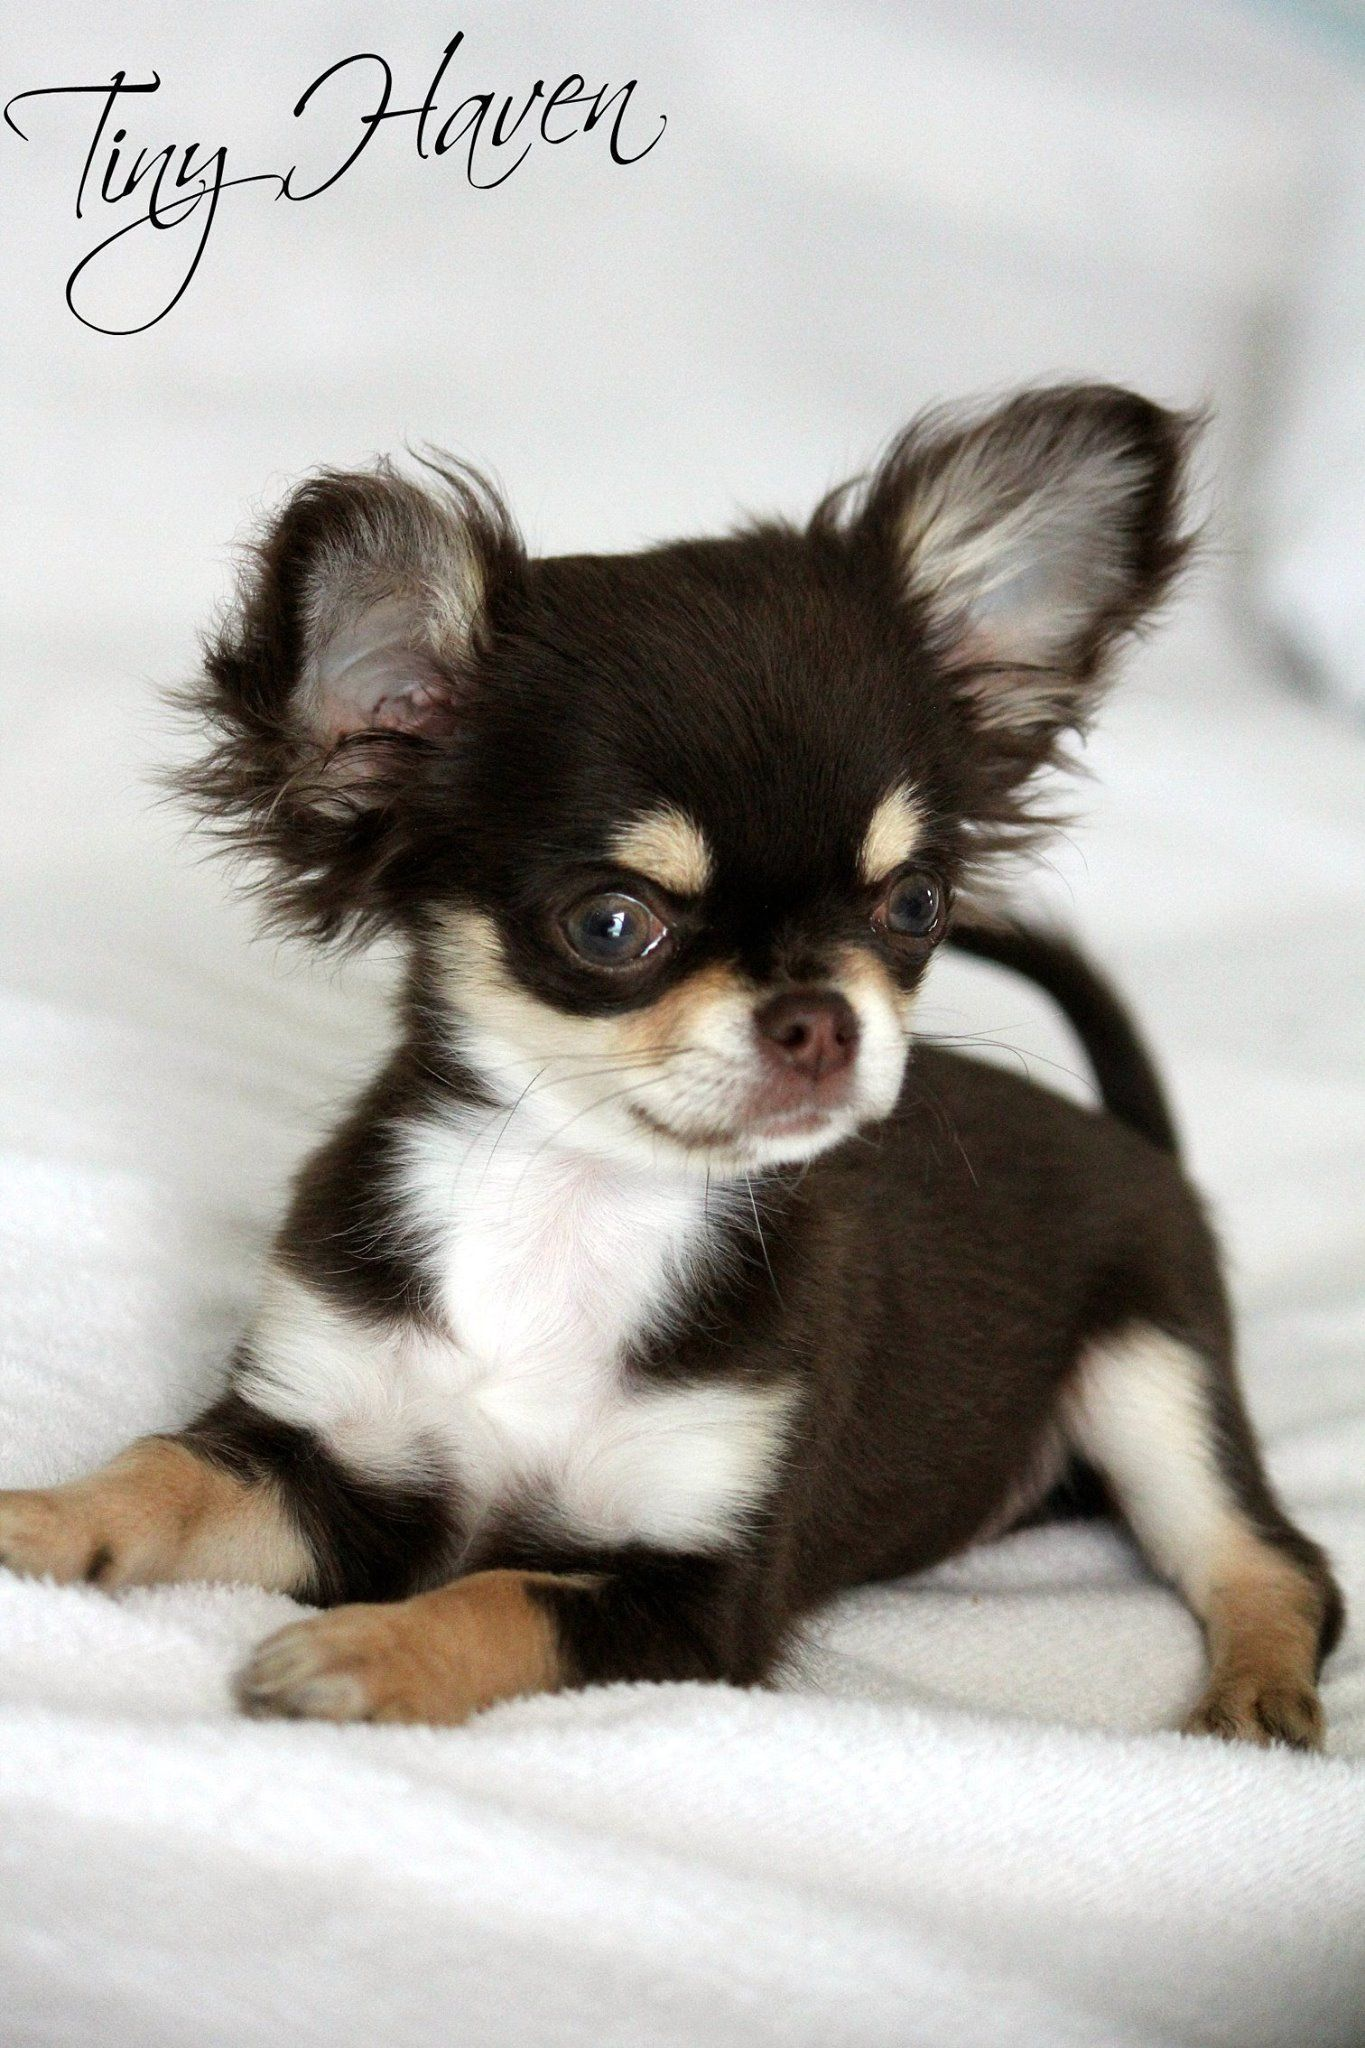 Cheery Dogs Treatment Hydrocephalus Dogs Symptoms Chihuahua Puppy Looks Like A Frisky Who Will Make A Chihuahua Puppy Looks Like A Frisky Who Will Make A Hydrocephalus bark post Hydrocephalus In Dogs